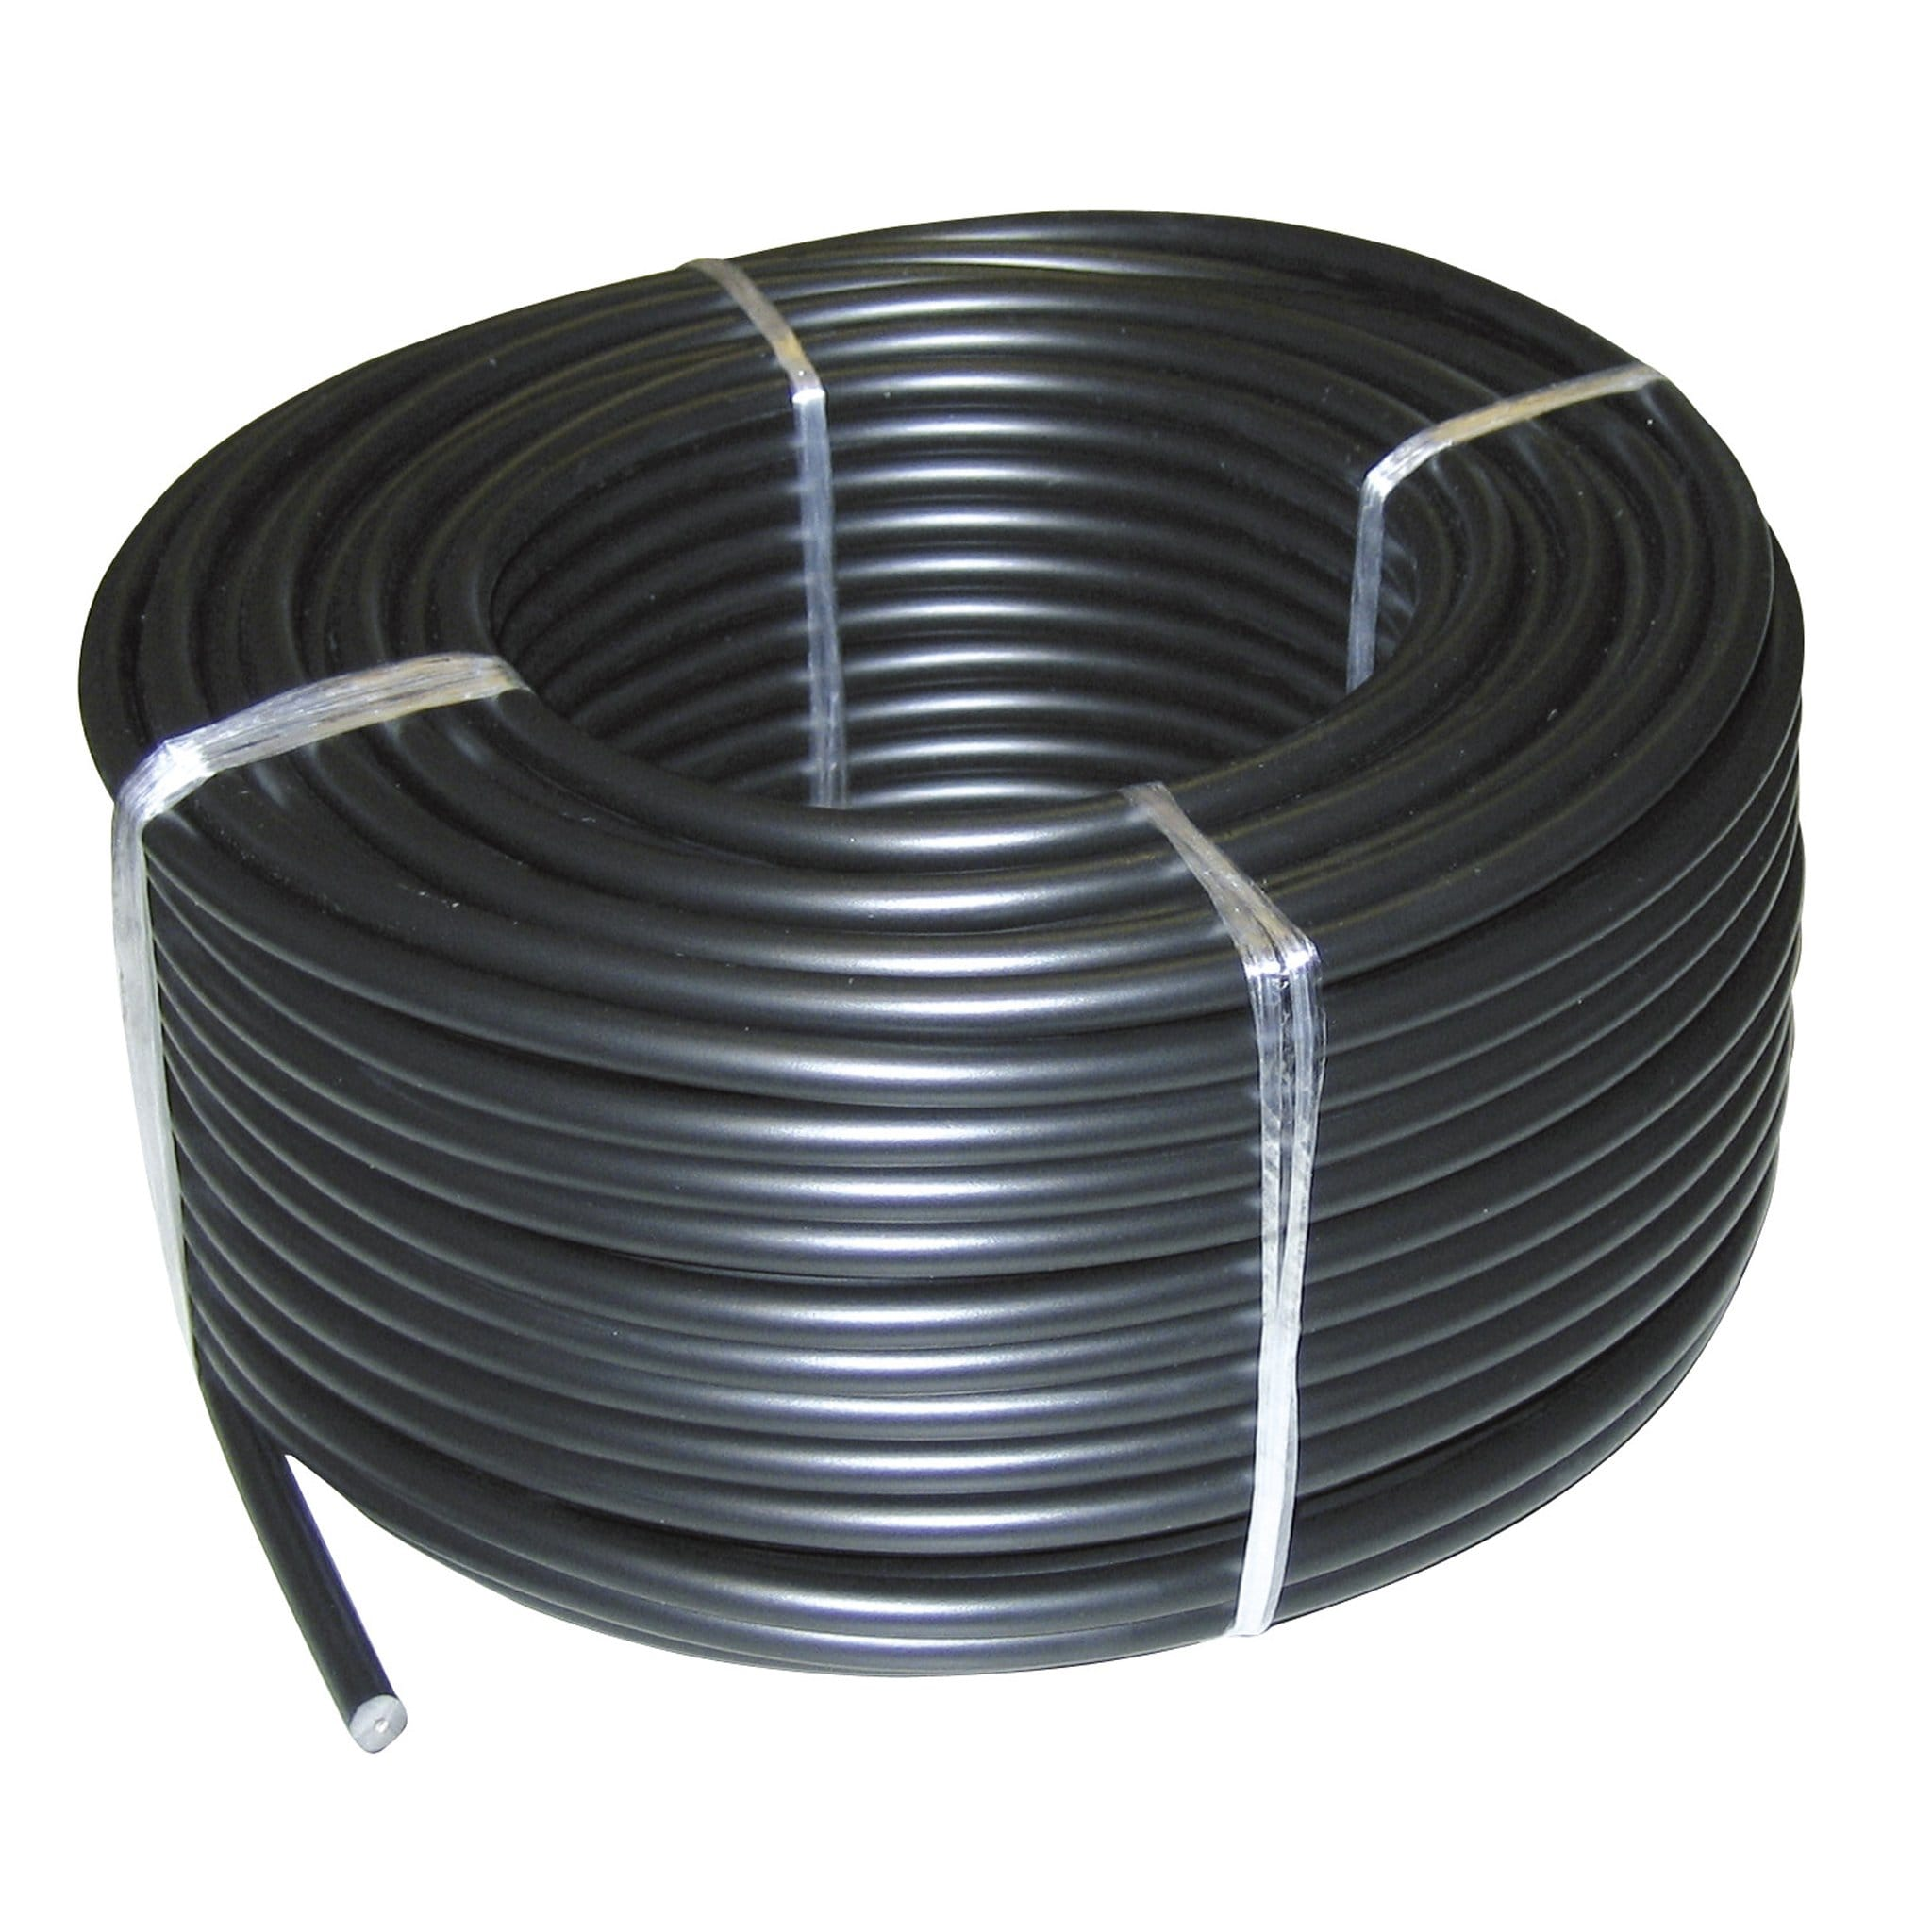 Corral High Voltage Underground Cable CRL0370 25m, 50m